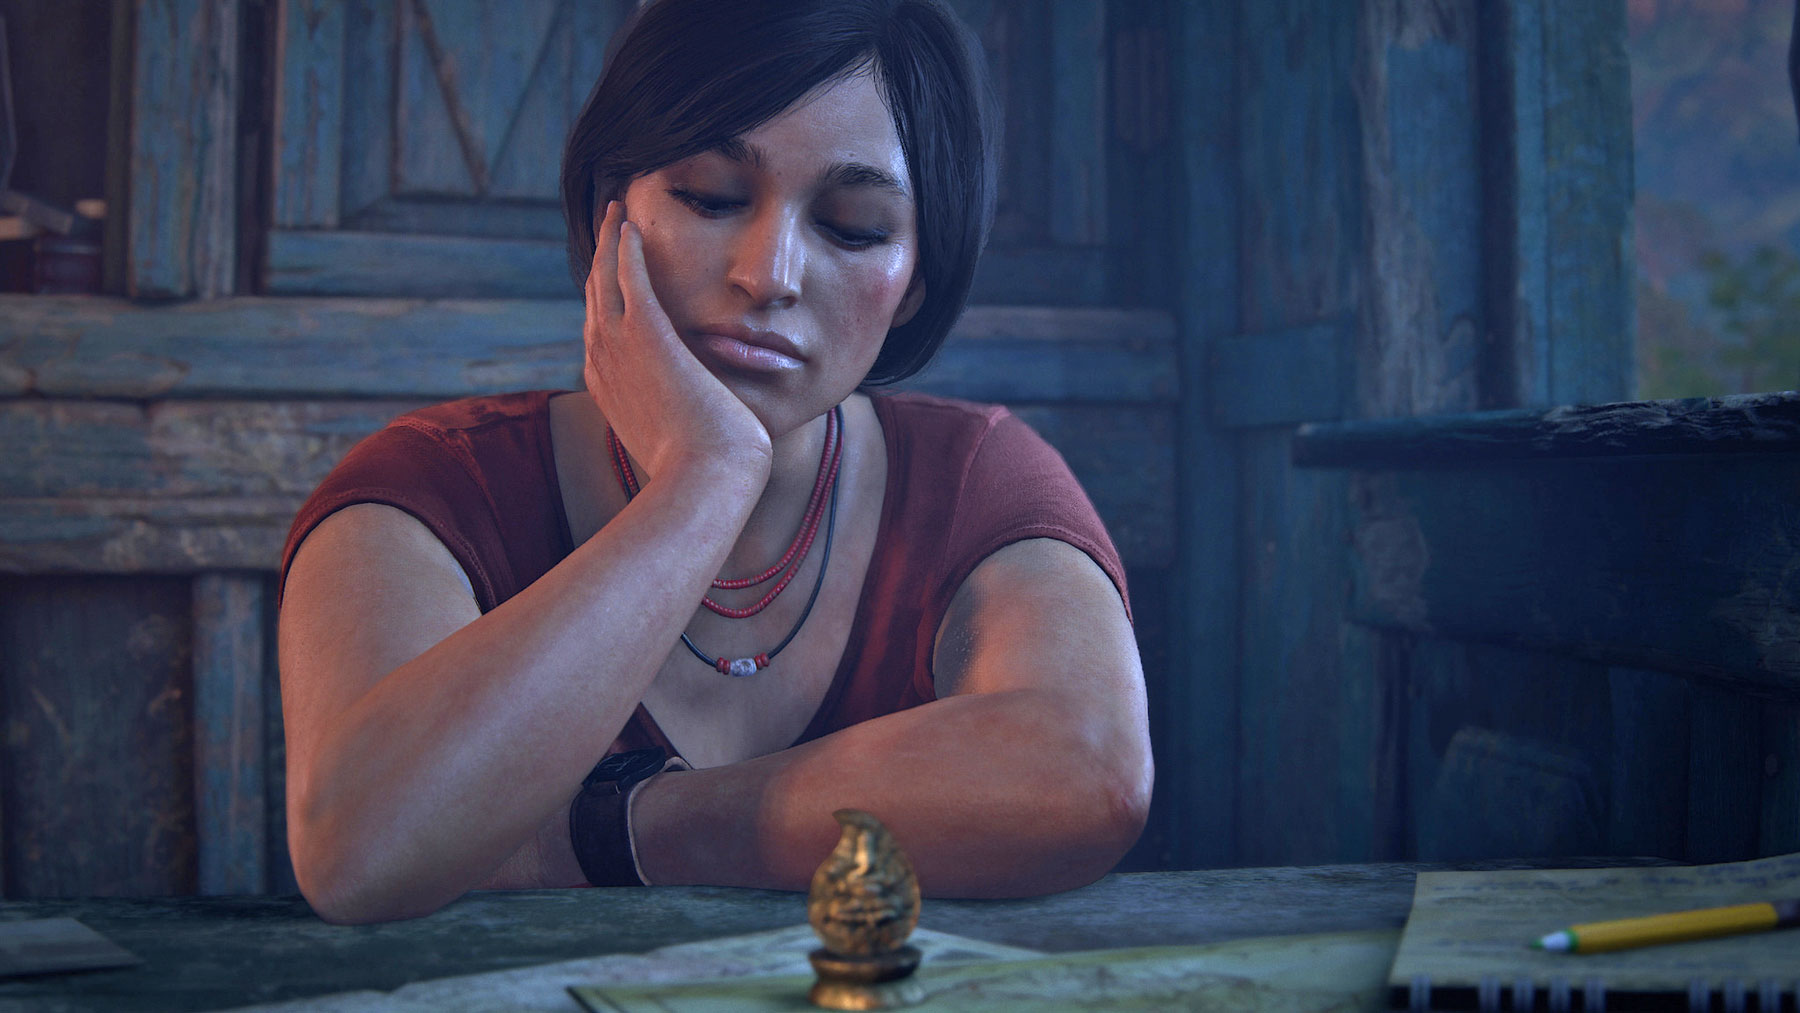 Chloe is a prominent figure in Uncharted 2 and makes an appearance in Uncharted 3. Despite this screen time, we know little about her history and ...